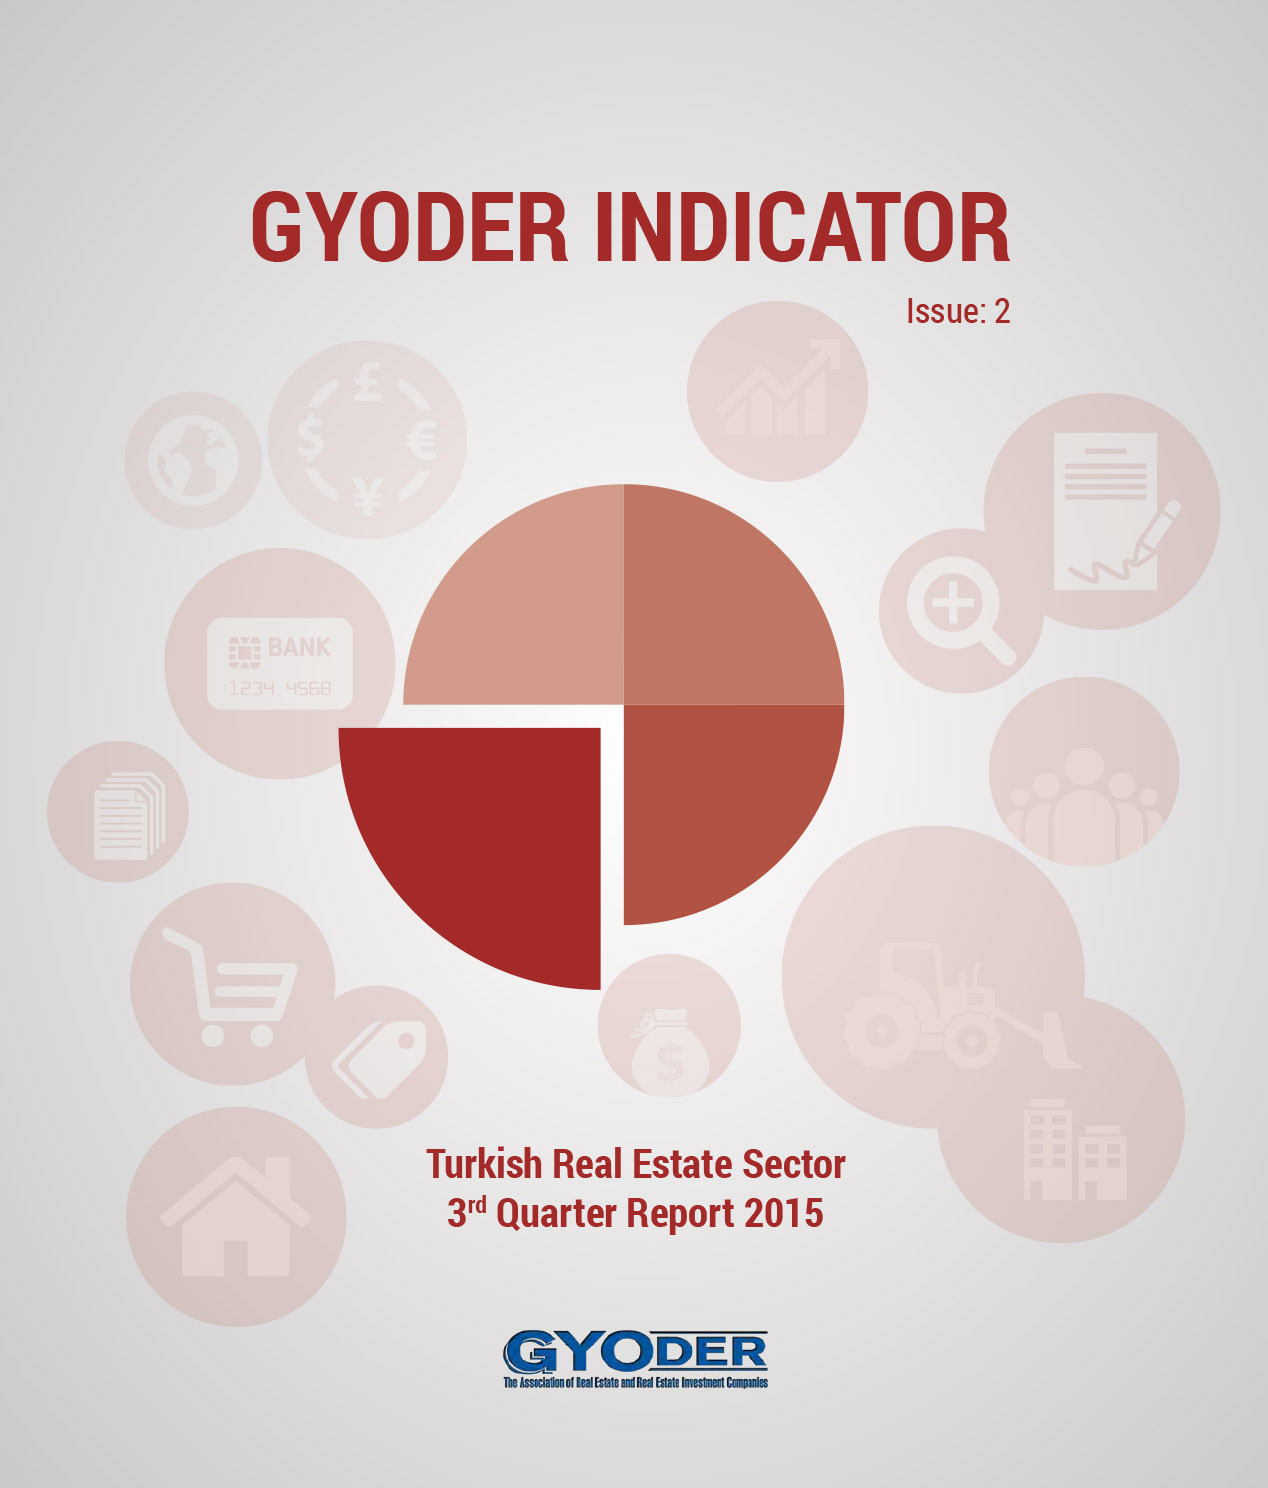 GYODER Indicator, Turkish Real Estate Sector 2015 3rd Quarter Report